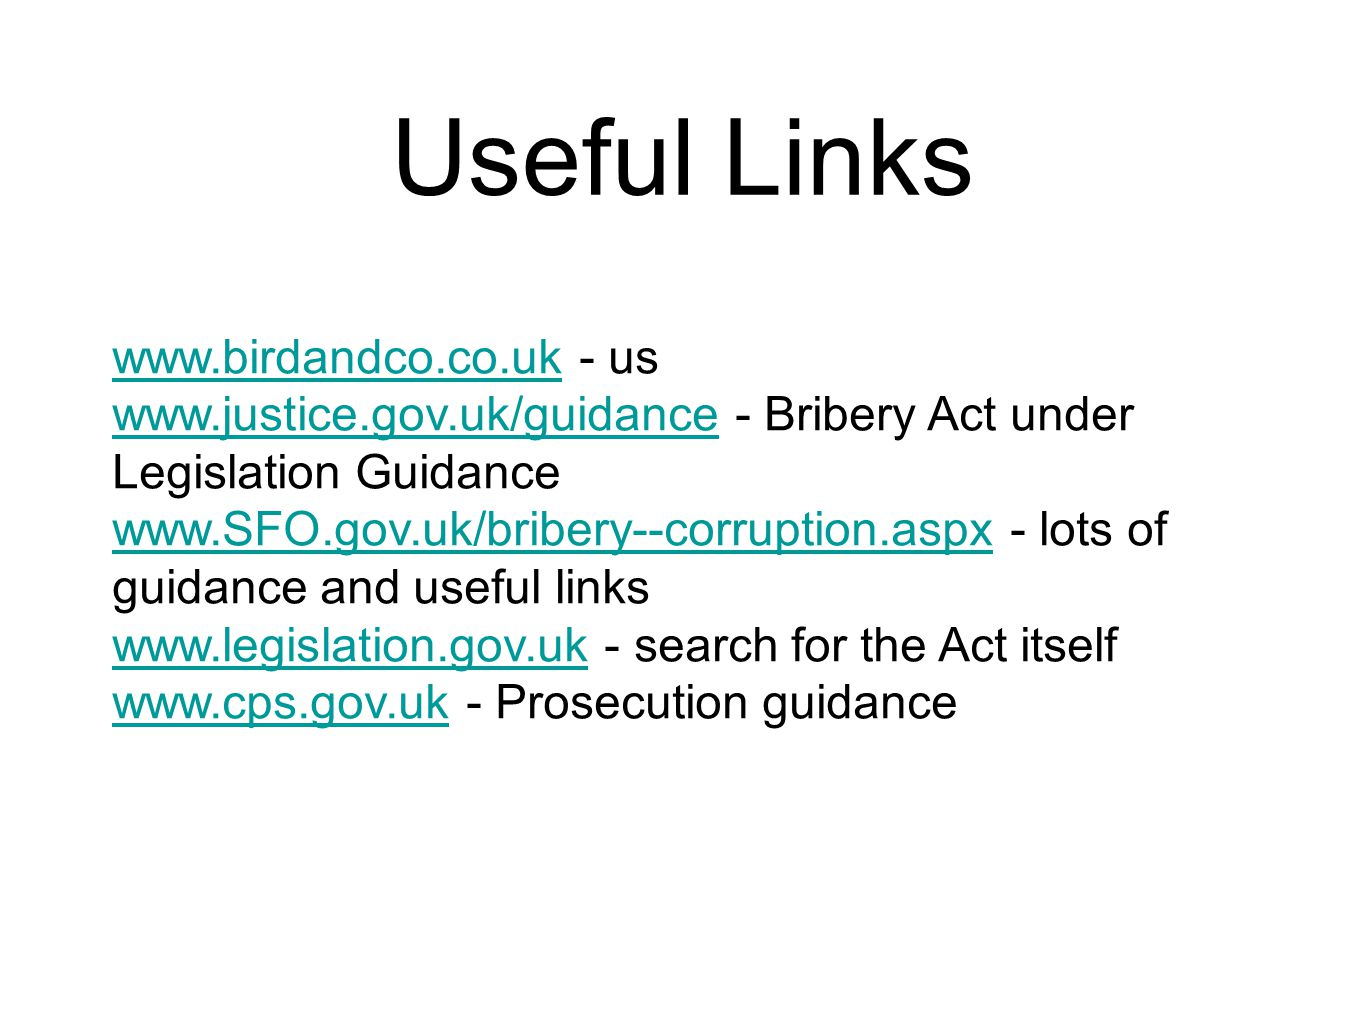 Useful Links www.birdandco.co.ukwww.birdandco.co.uk - us www.justice.gov.uk/guidancewww.justice.gov.uk/guidance - Bribery Act under Legislation Guidance www.SFO.gov.uk/bribery--corruption.aspxwww.SFO.gov.uk/bribery--corruption.aspx - lots of guidance and useful links www.legislation.gov.ukwww.legislation.gov.uk - search for the Act itself www.cps.gov.ukwww.cps.gov.uk - Prosecution guidance